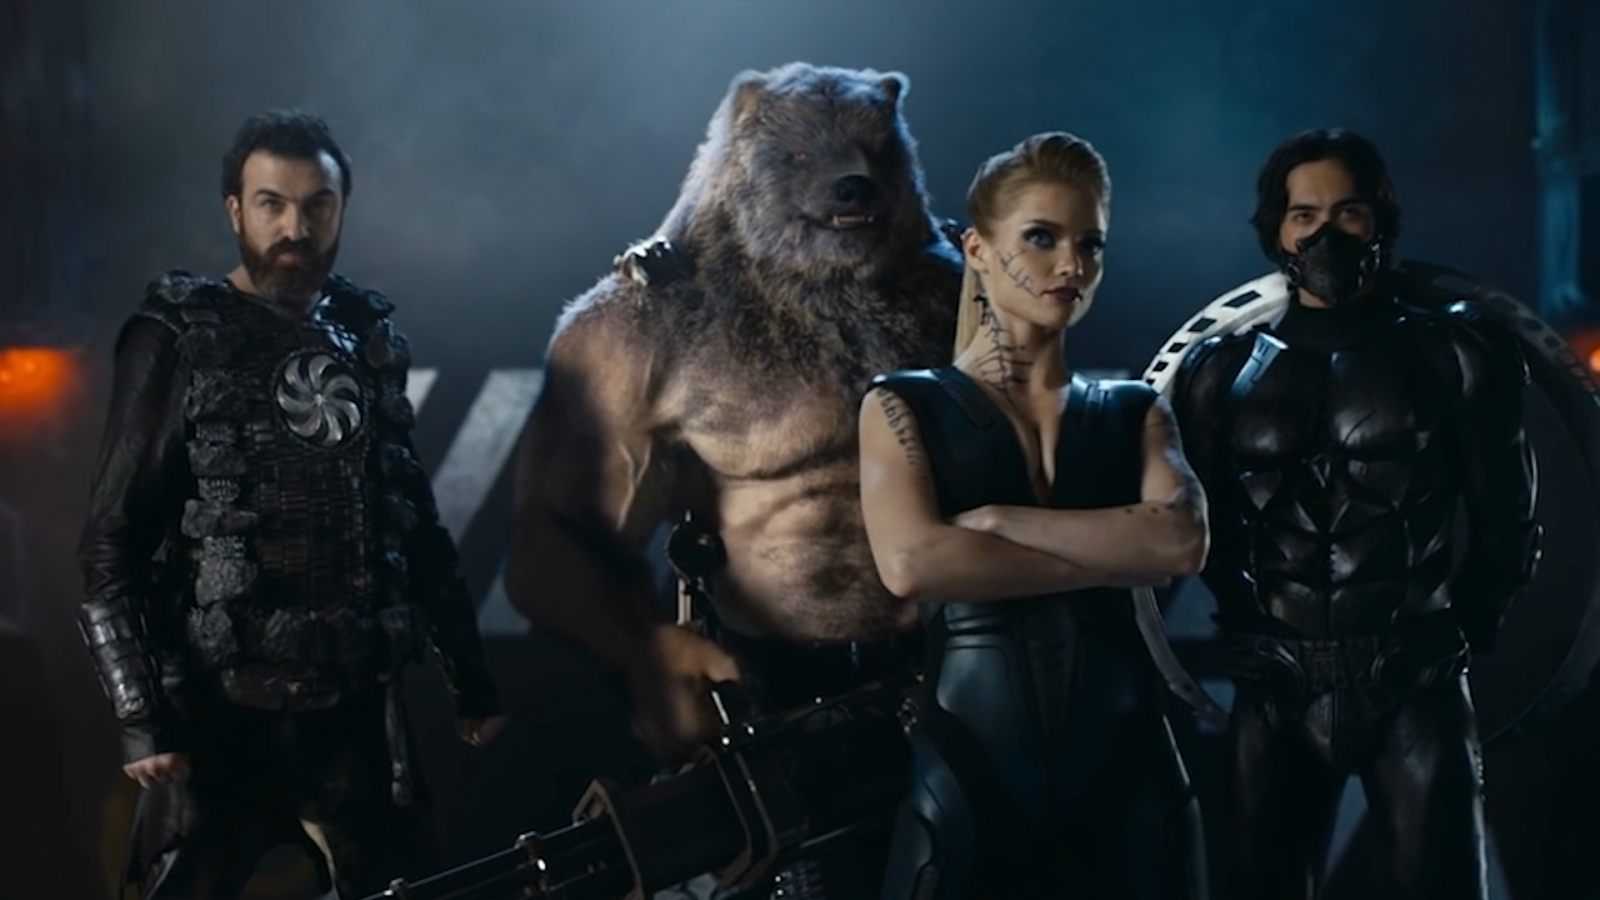 Russian superhero movie featuring machine-gun-wielding bear strongly resembles Marvel's Avengers